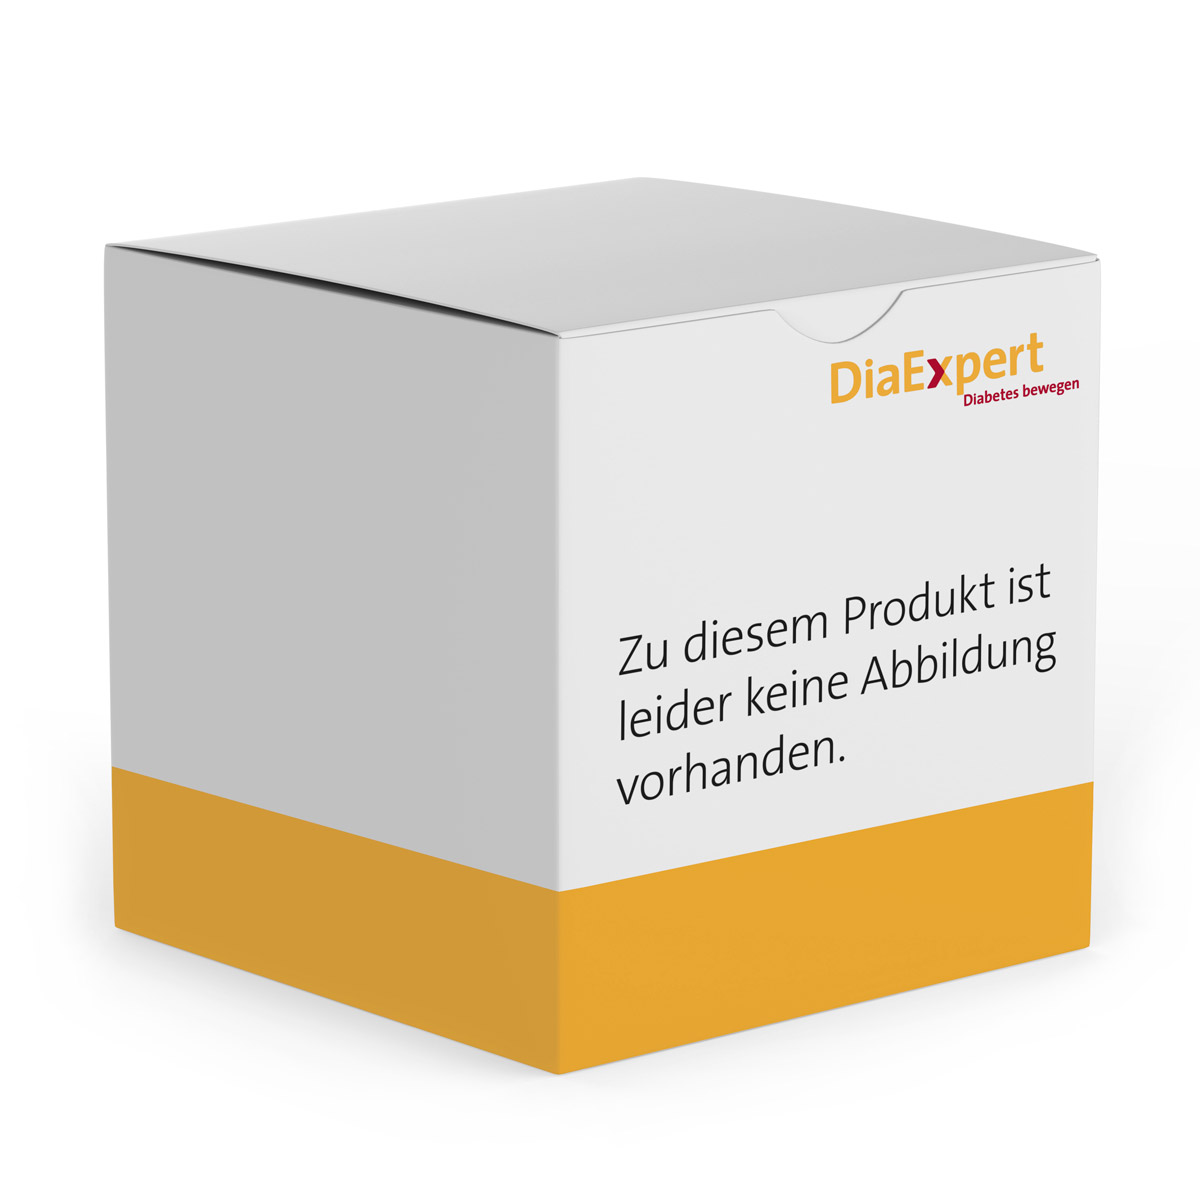 Das Dunkle Low Carb Brotmischung